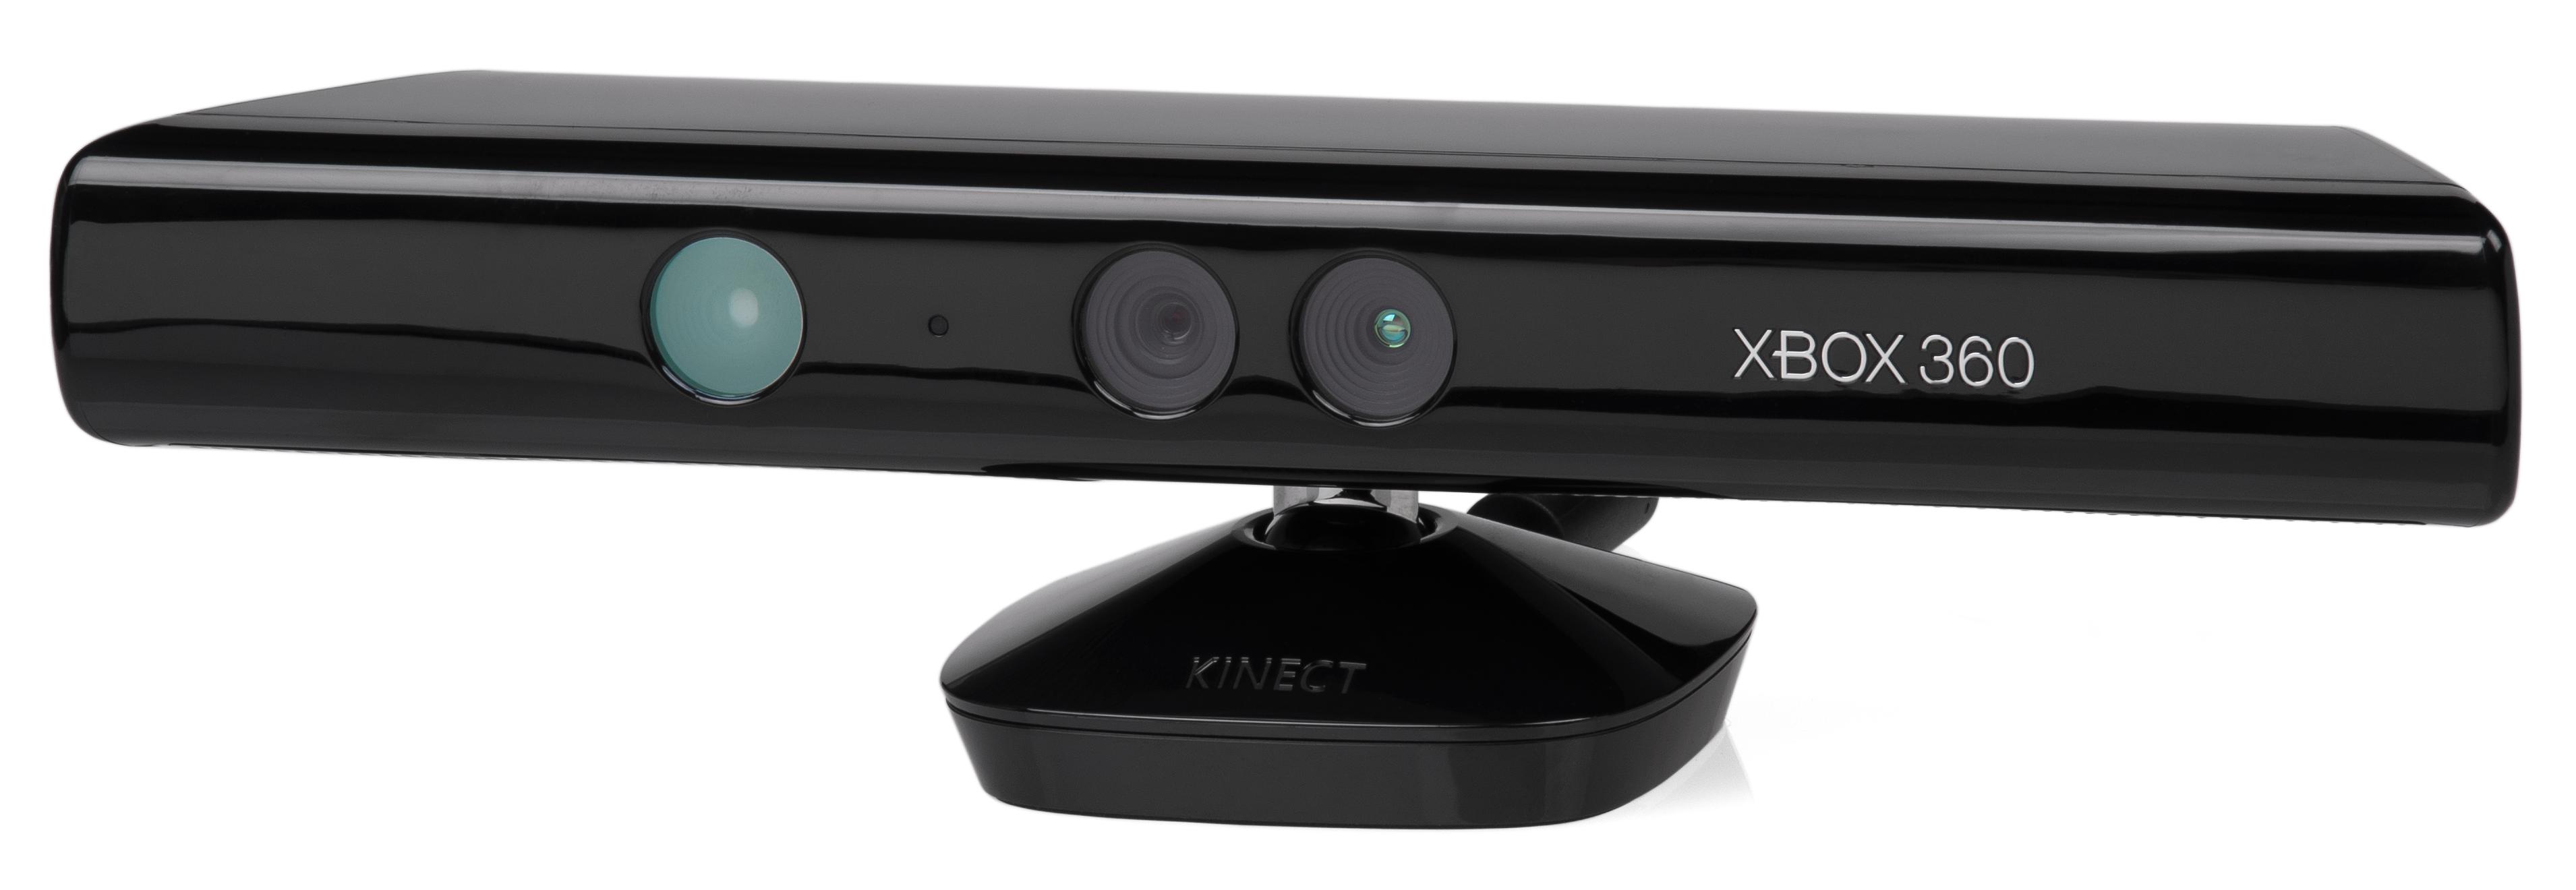 Xbox-360-Kinect-Standalone.png